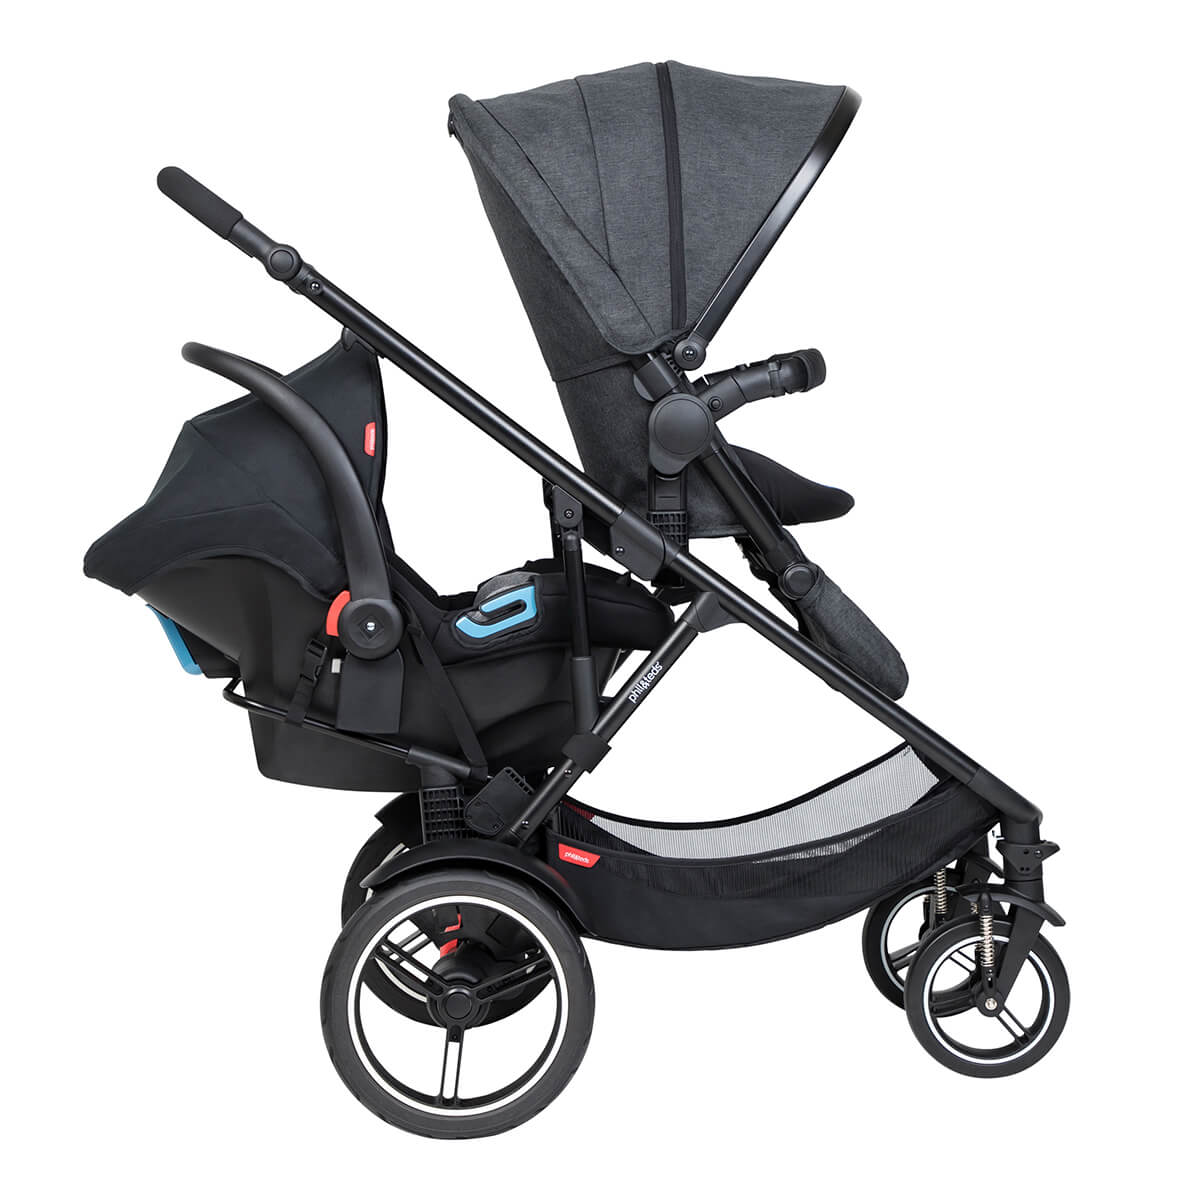 https://cdn.accentuate.io/4509528916056/19272668282968/philteds-voyager-buggy-in-forward-facing-mode-with-travel-system-in-the-rear-v1626484606391.jpg?1200x1200